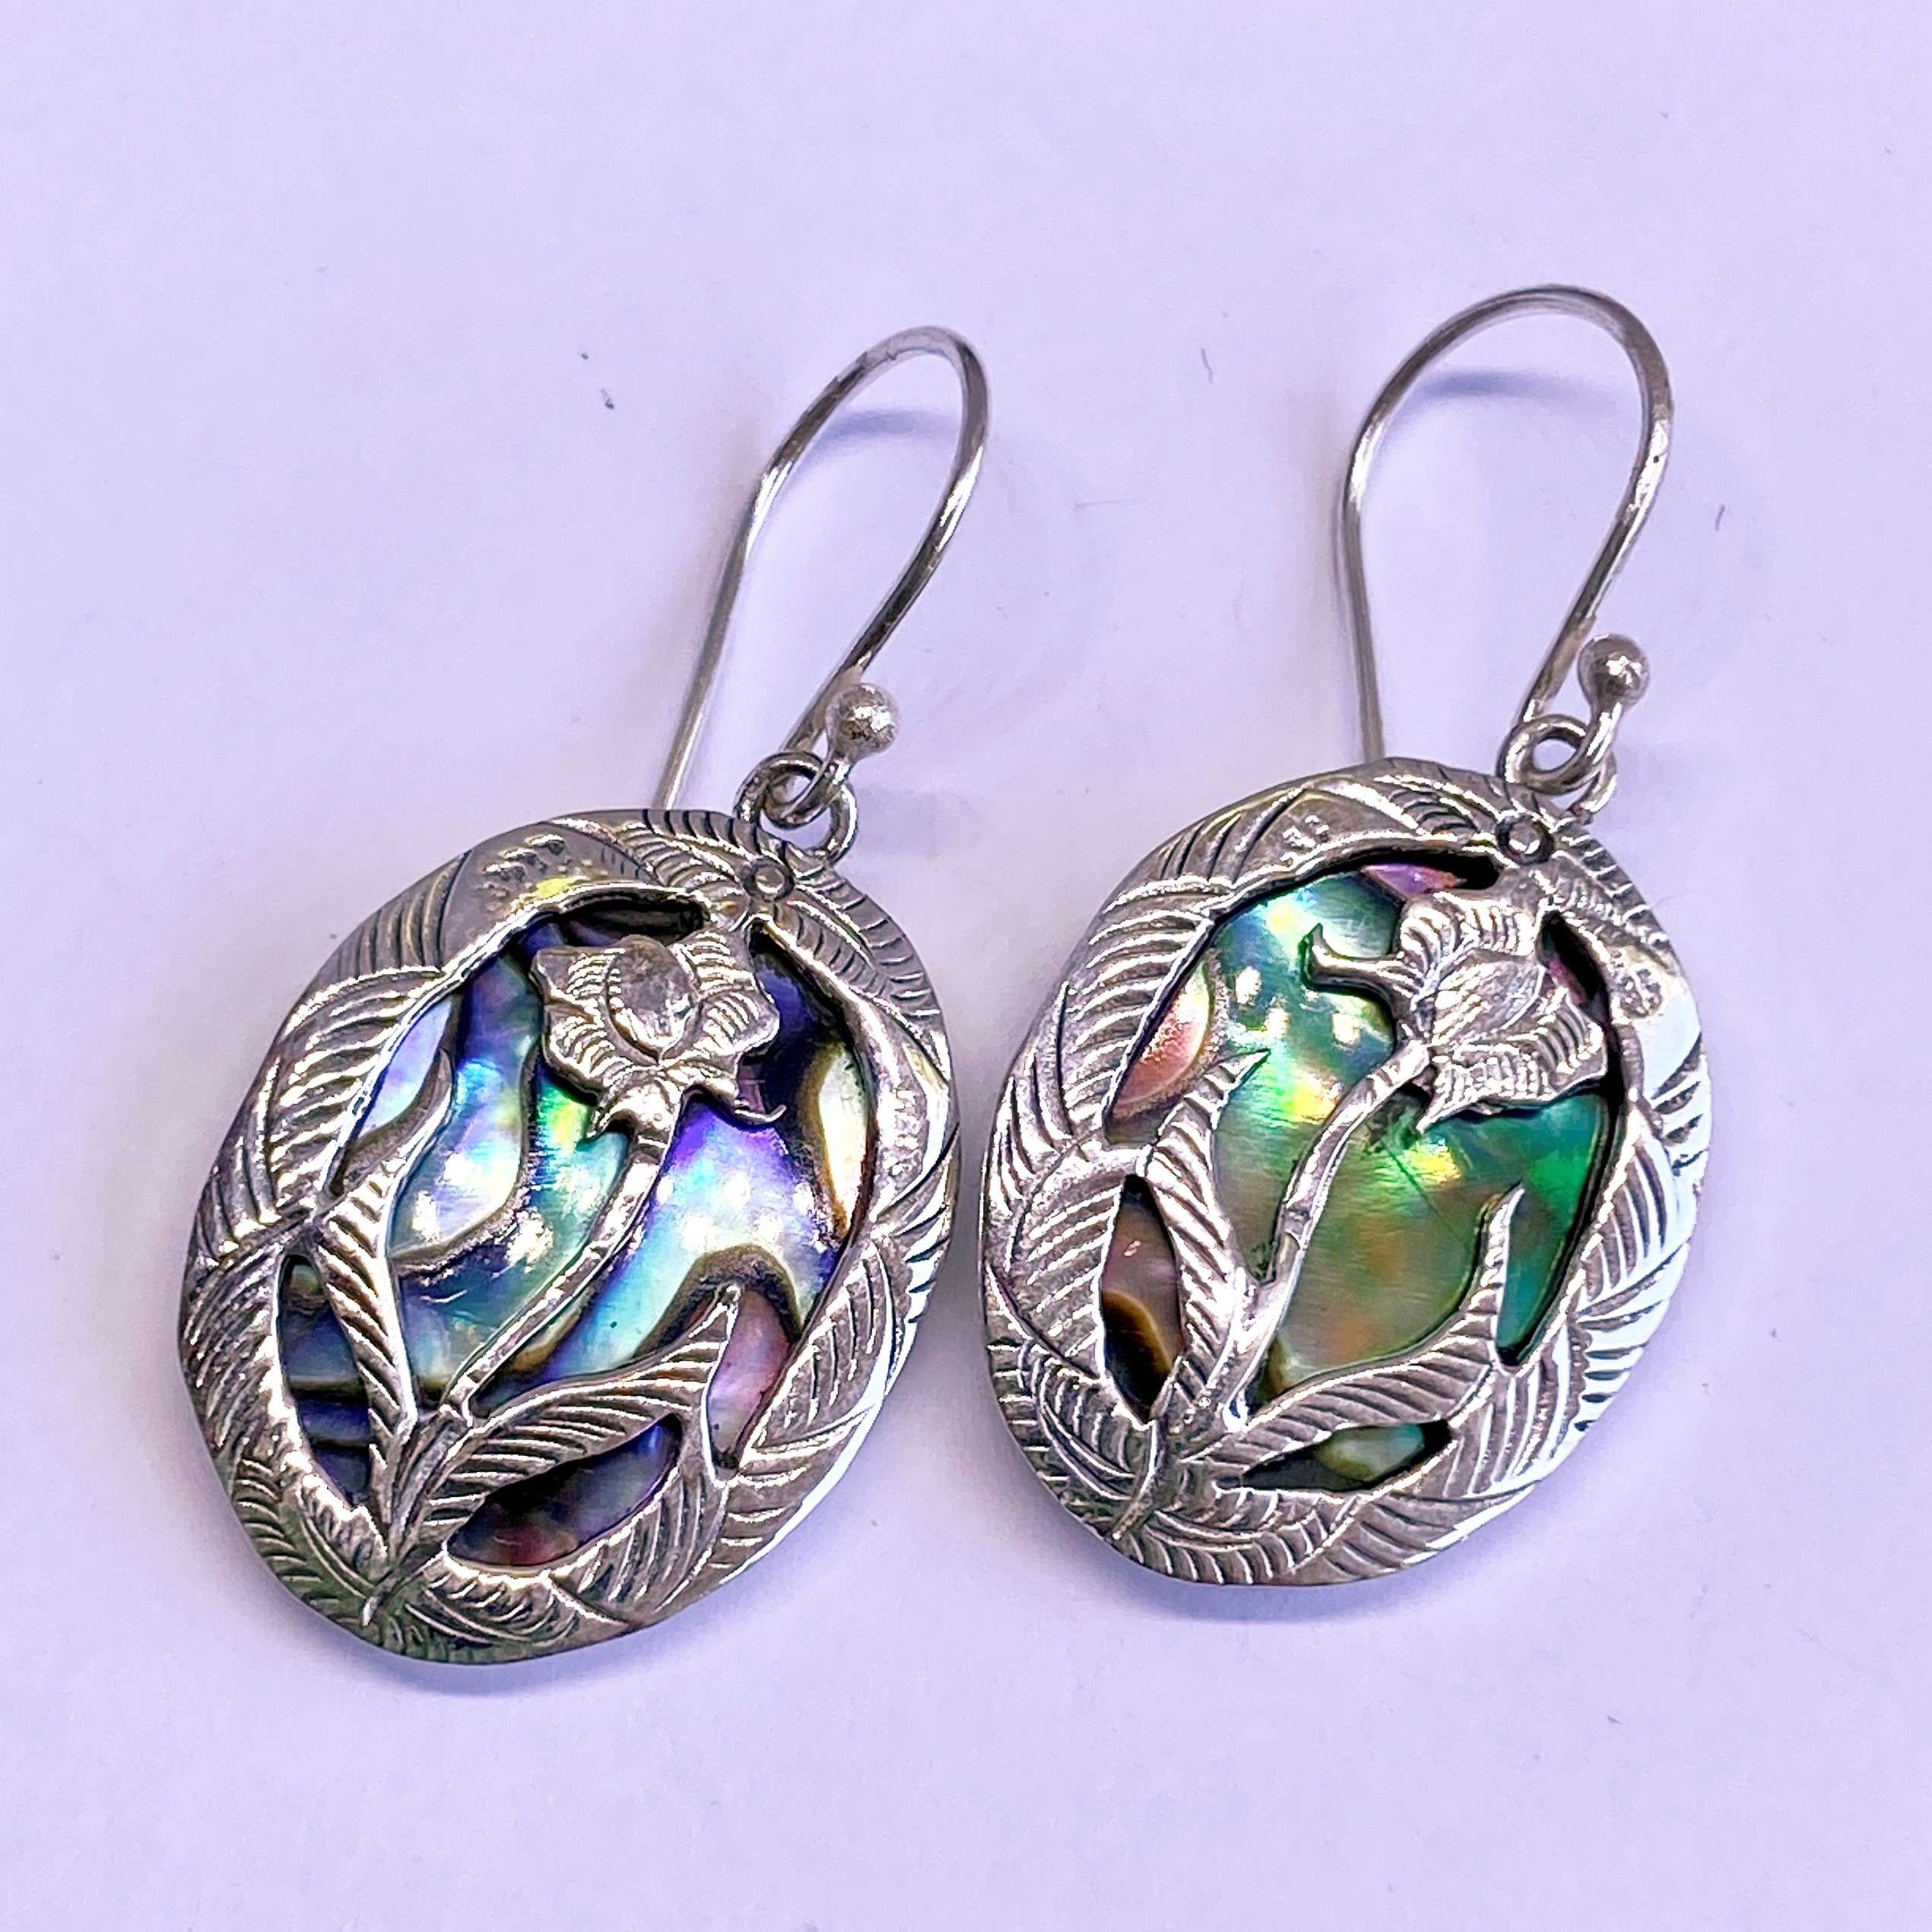 (HANDMADE 925 BALI SILVER LOTUS FLOWER EARRINGS WITH ABALONE)